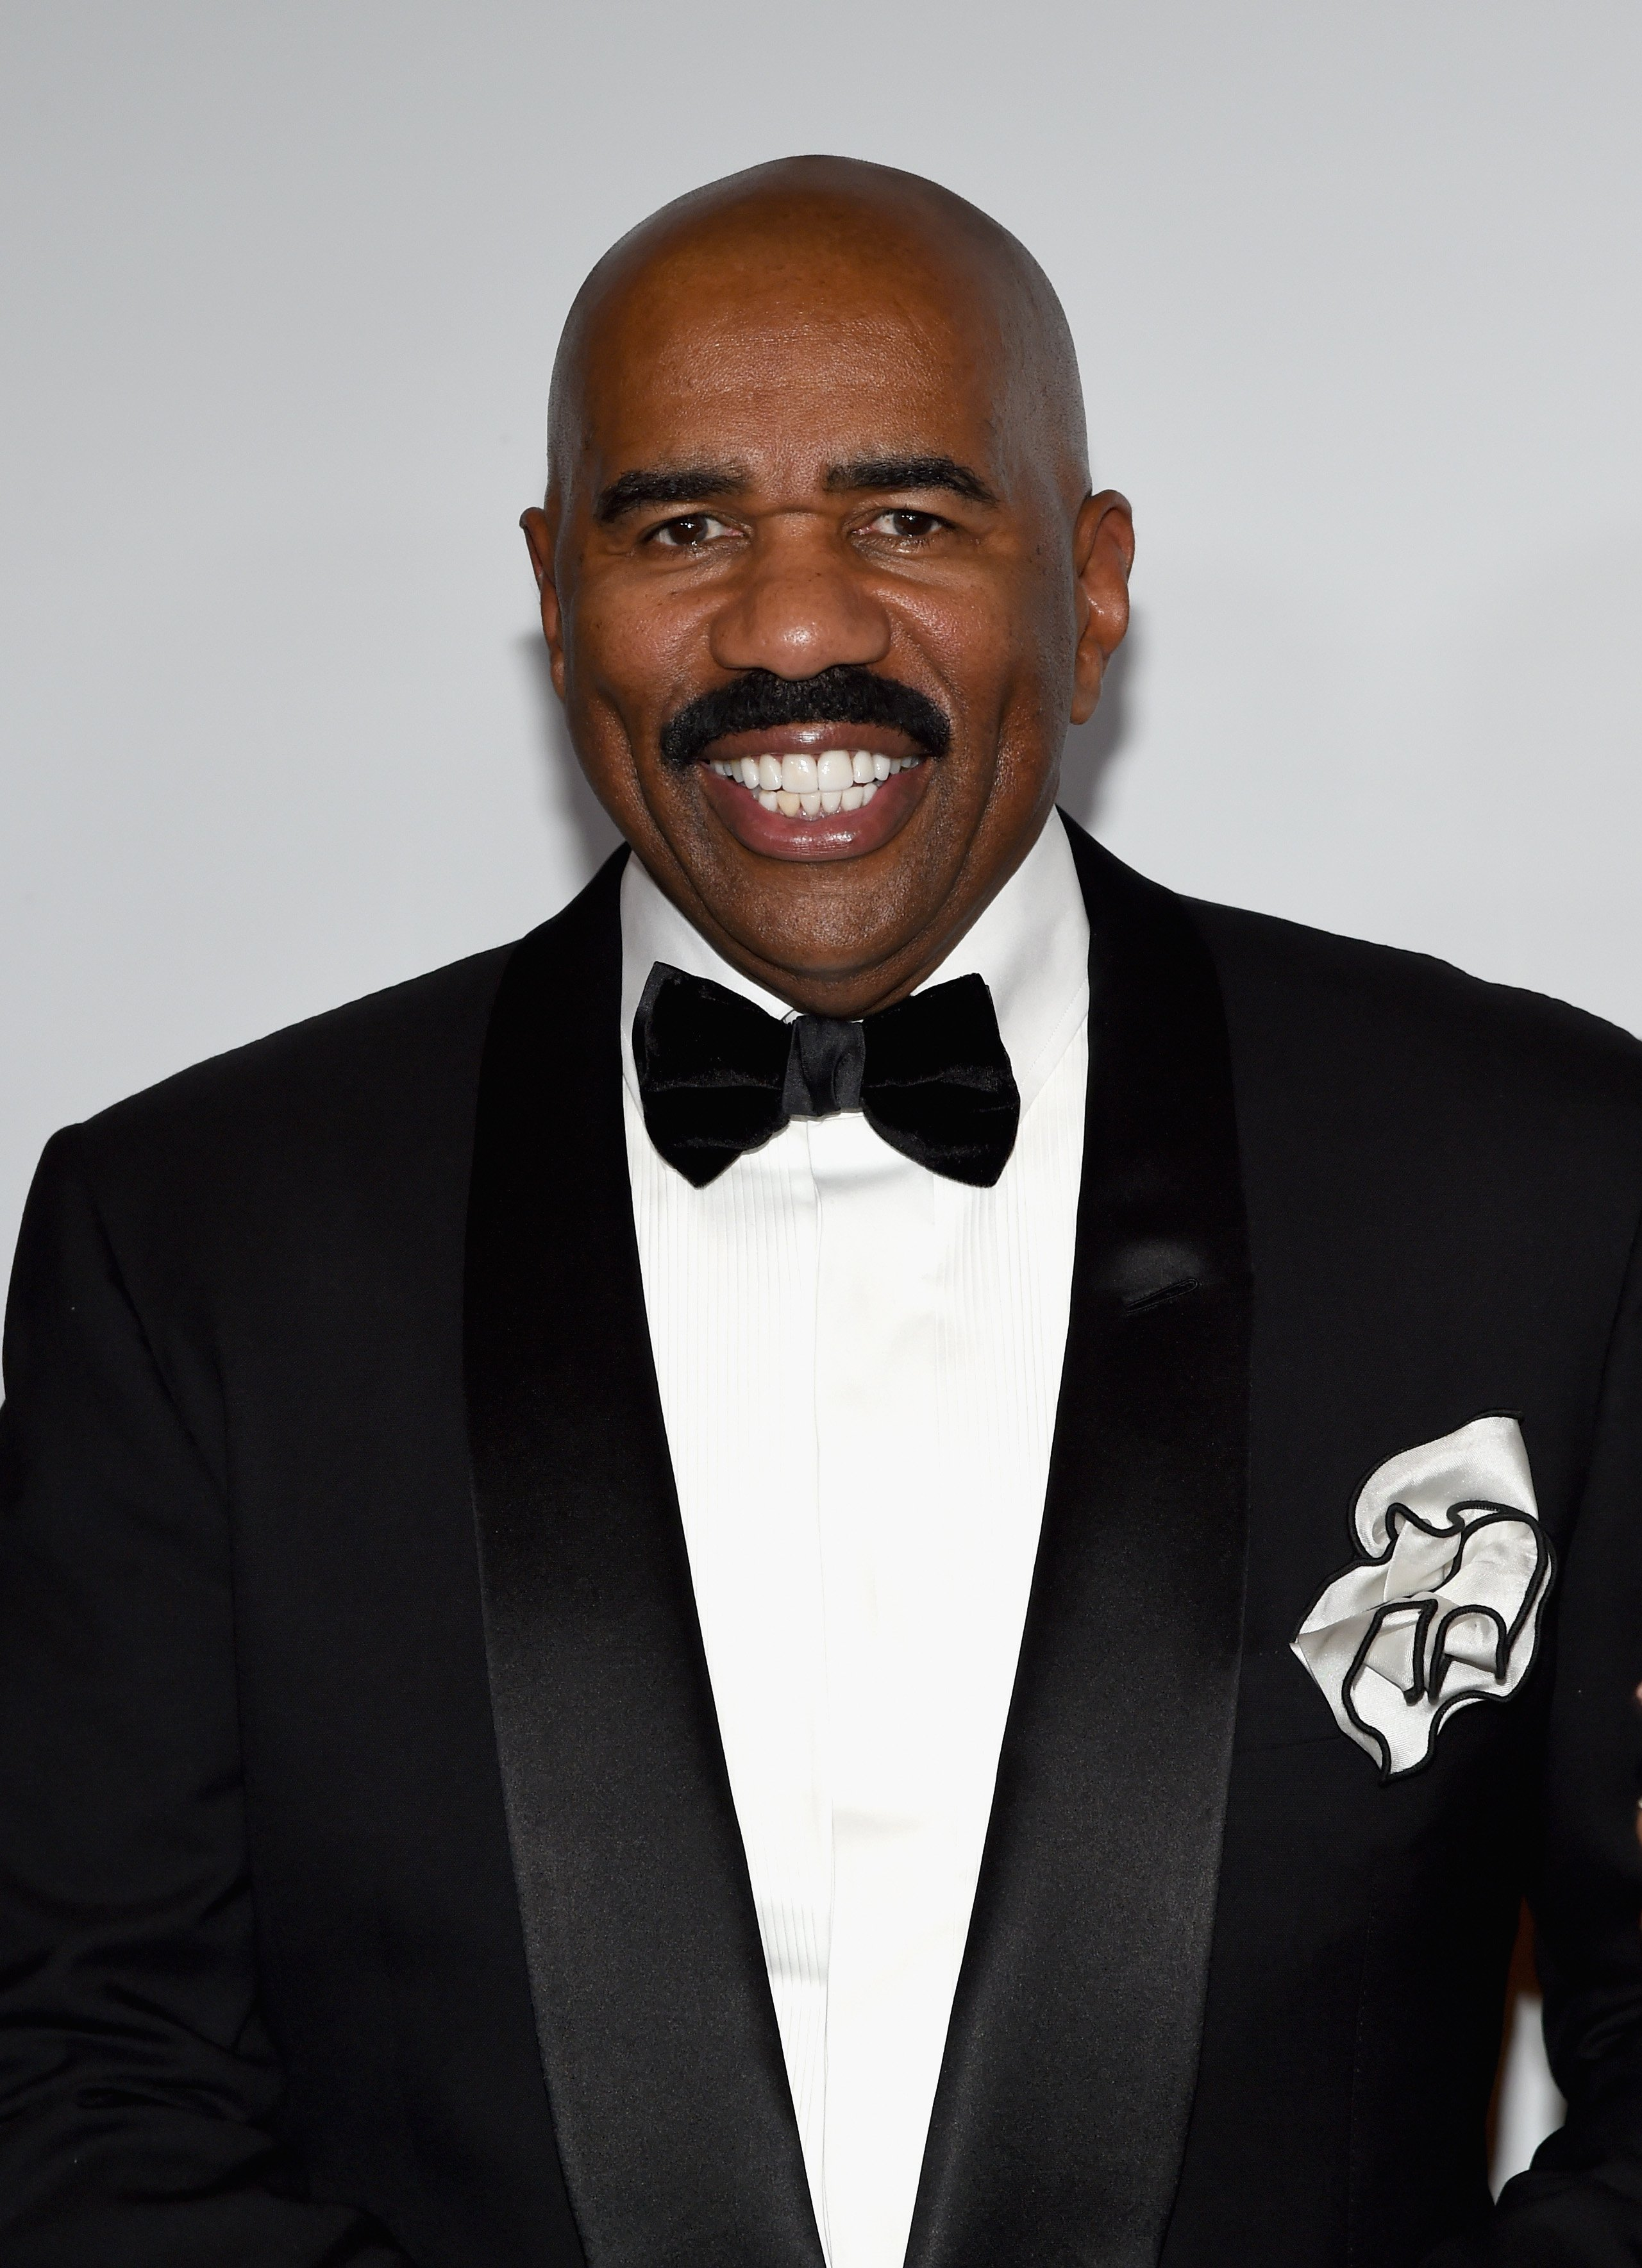 Steve Harvey attends the 2015 Miss Universe Pageant at Planet Hollywood Resort & Casino on December 20, 2015. | Photo: Getty Images